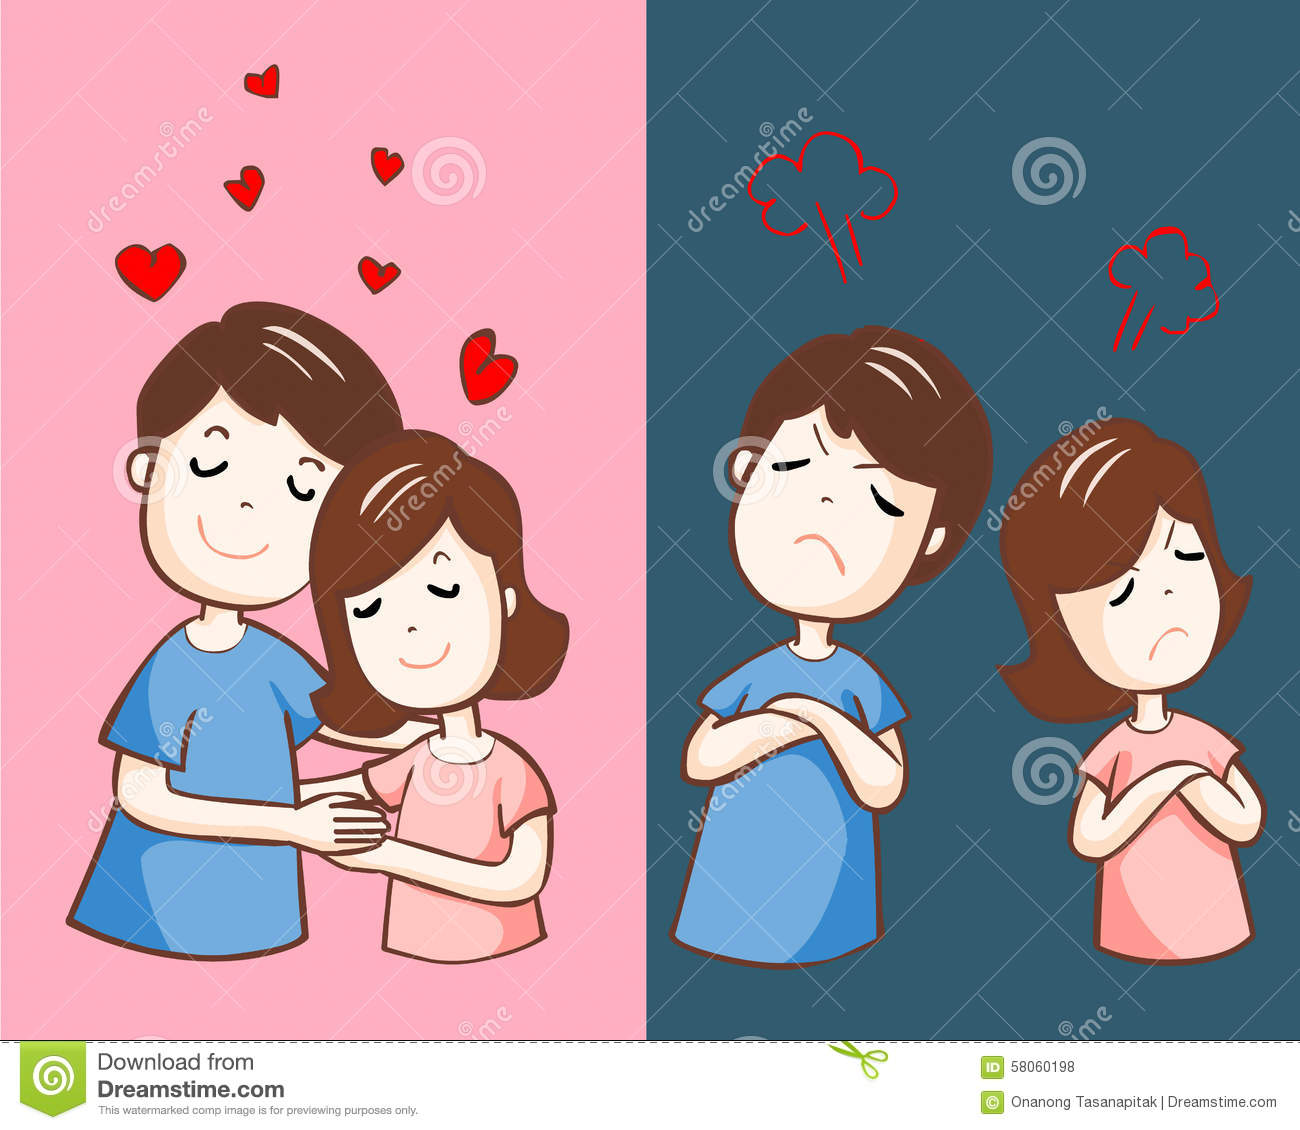 Love Each Other Cartoon: Changing Couple Relationship Cartoon Illustration Stock